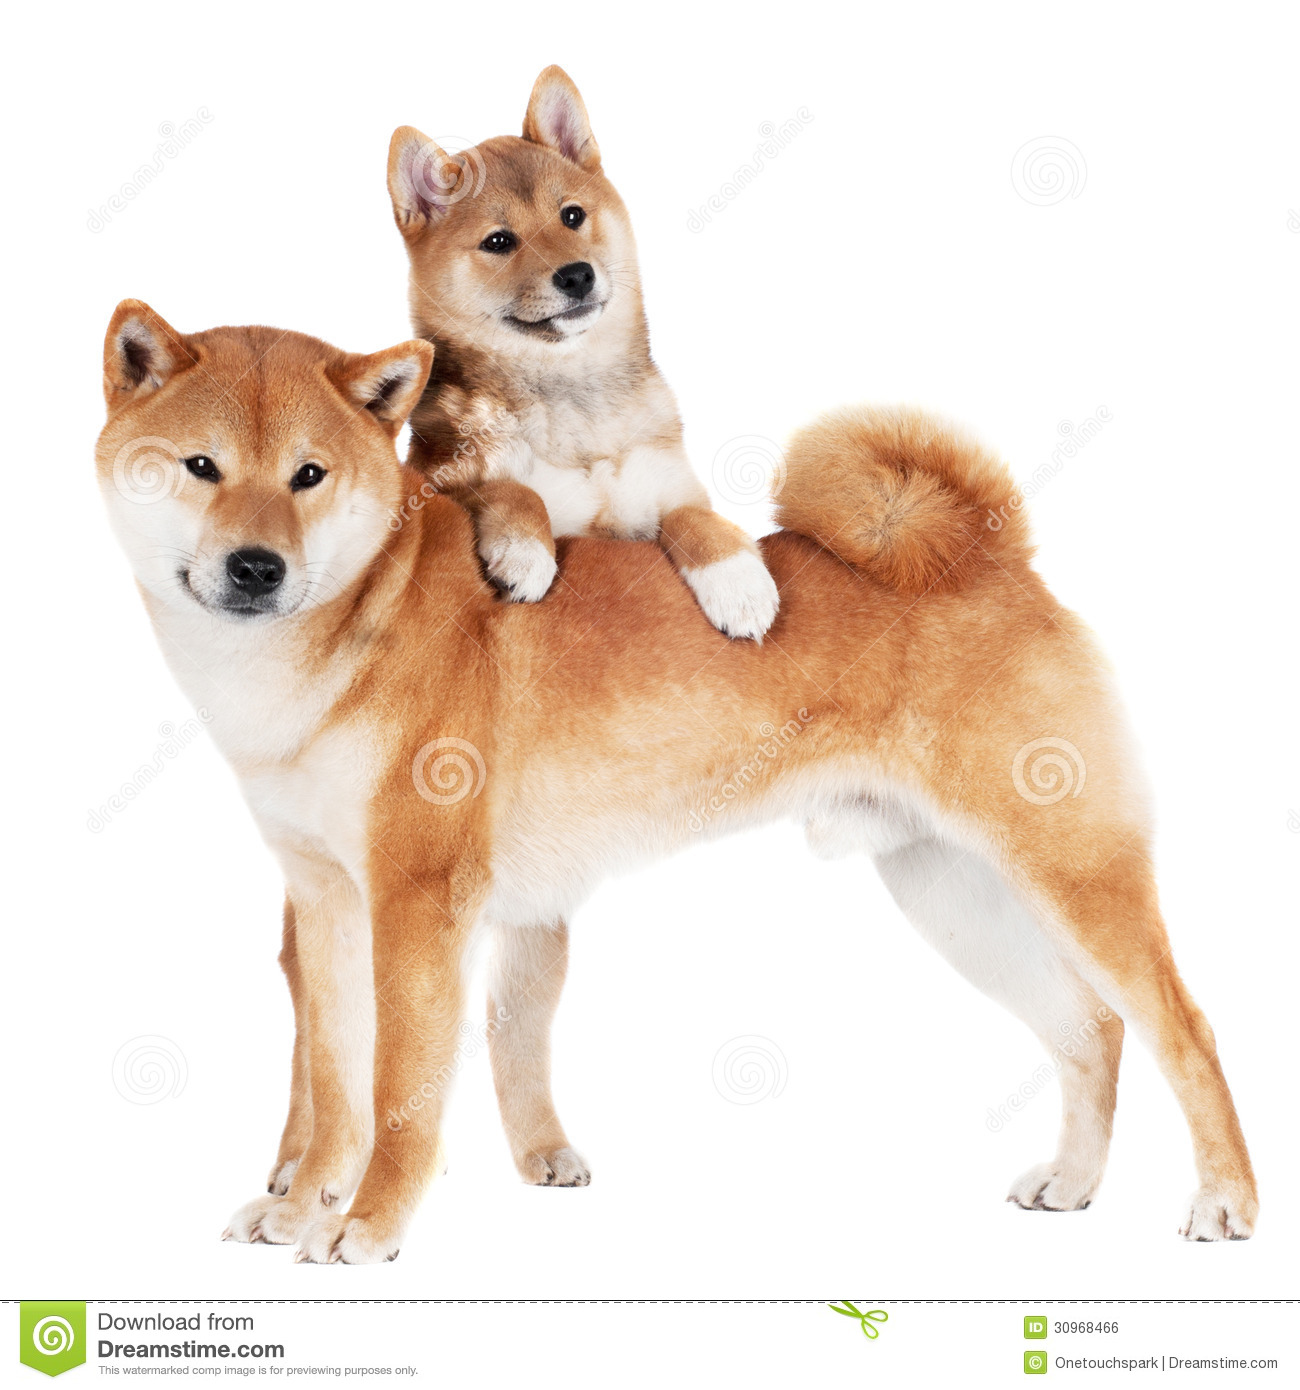 shiba inu hund und welpe stockfoto bild von freund schauen 30968466. Black Bedroom Furniture Sets. Home Design Ideas